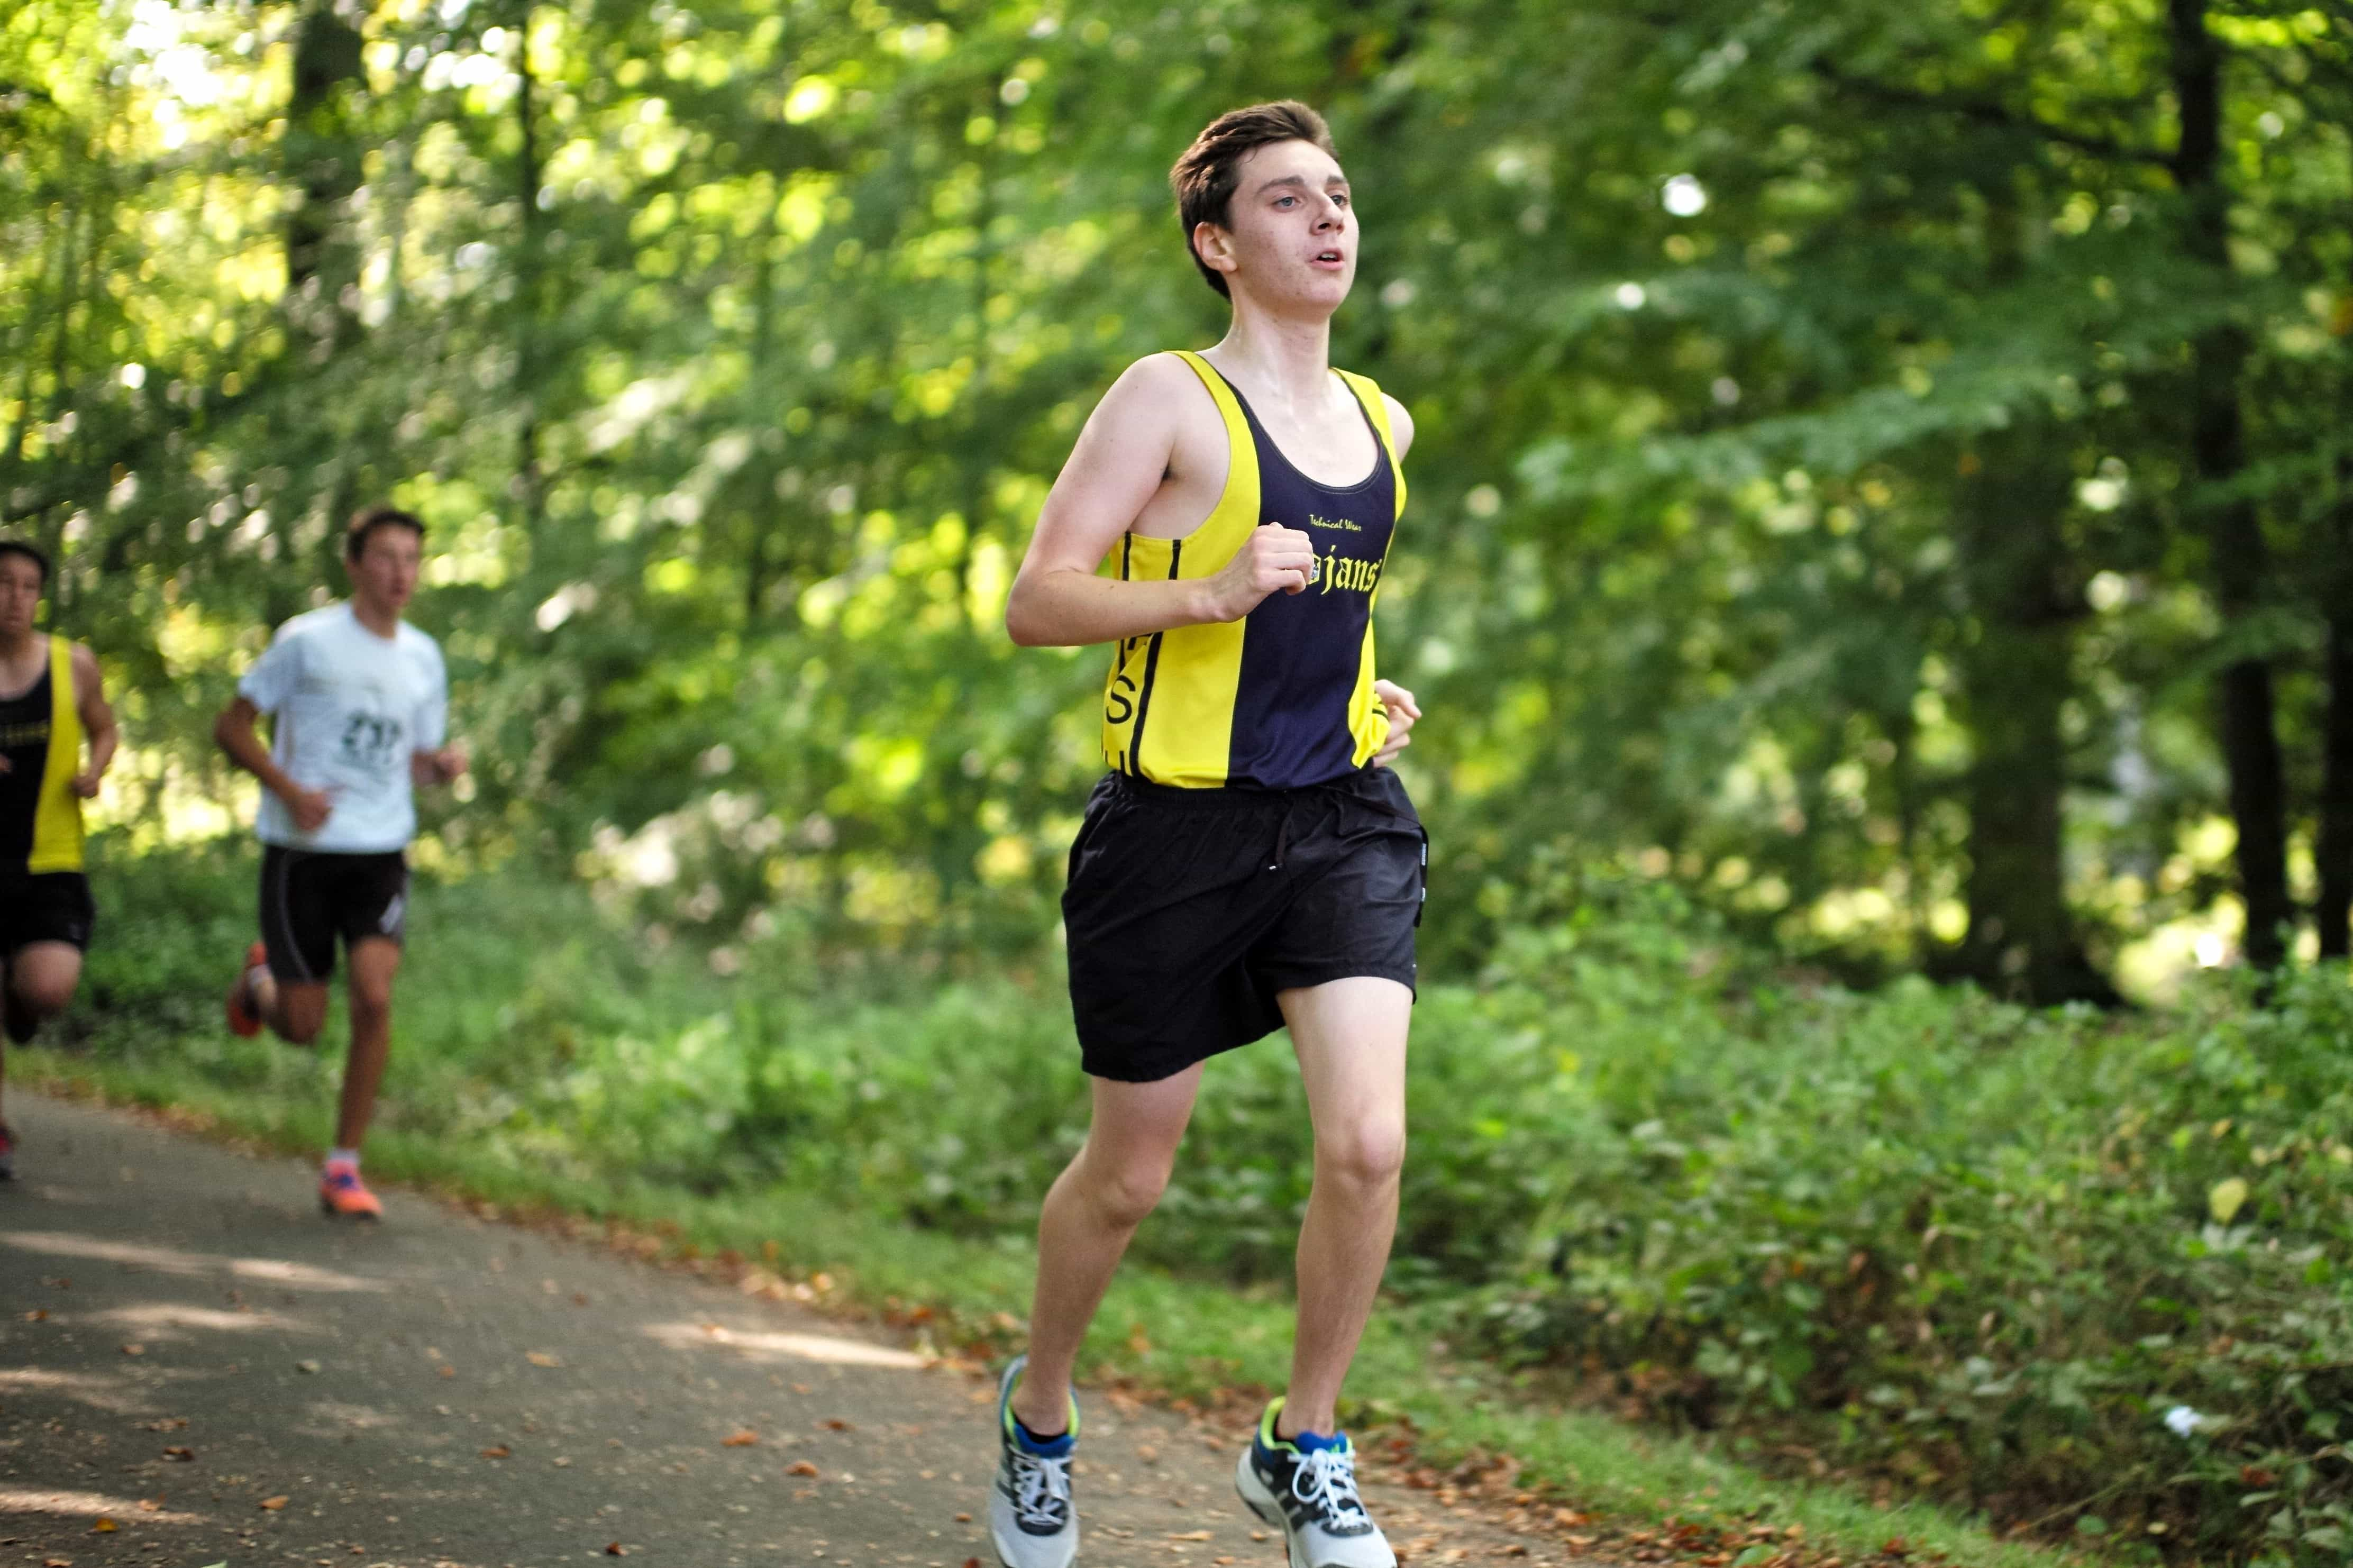 Free picture: boy, boys, young, athlete, sport, fitness, marathon, person